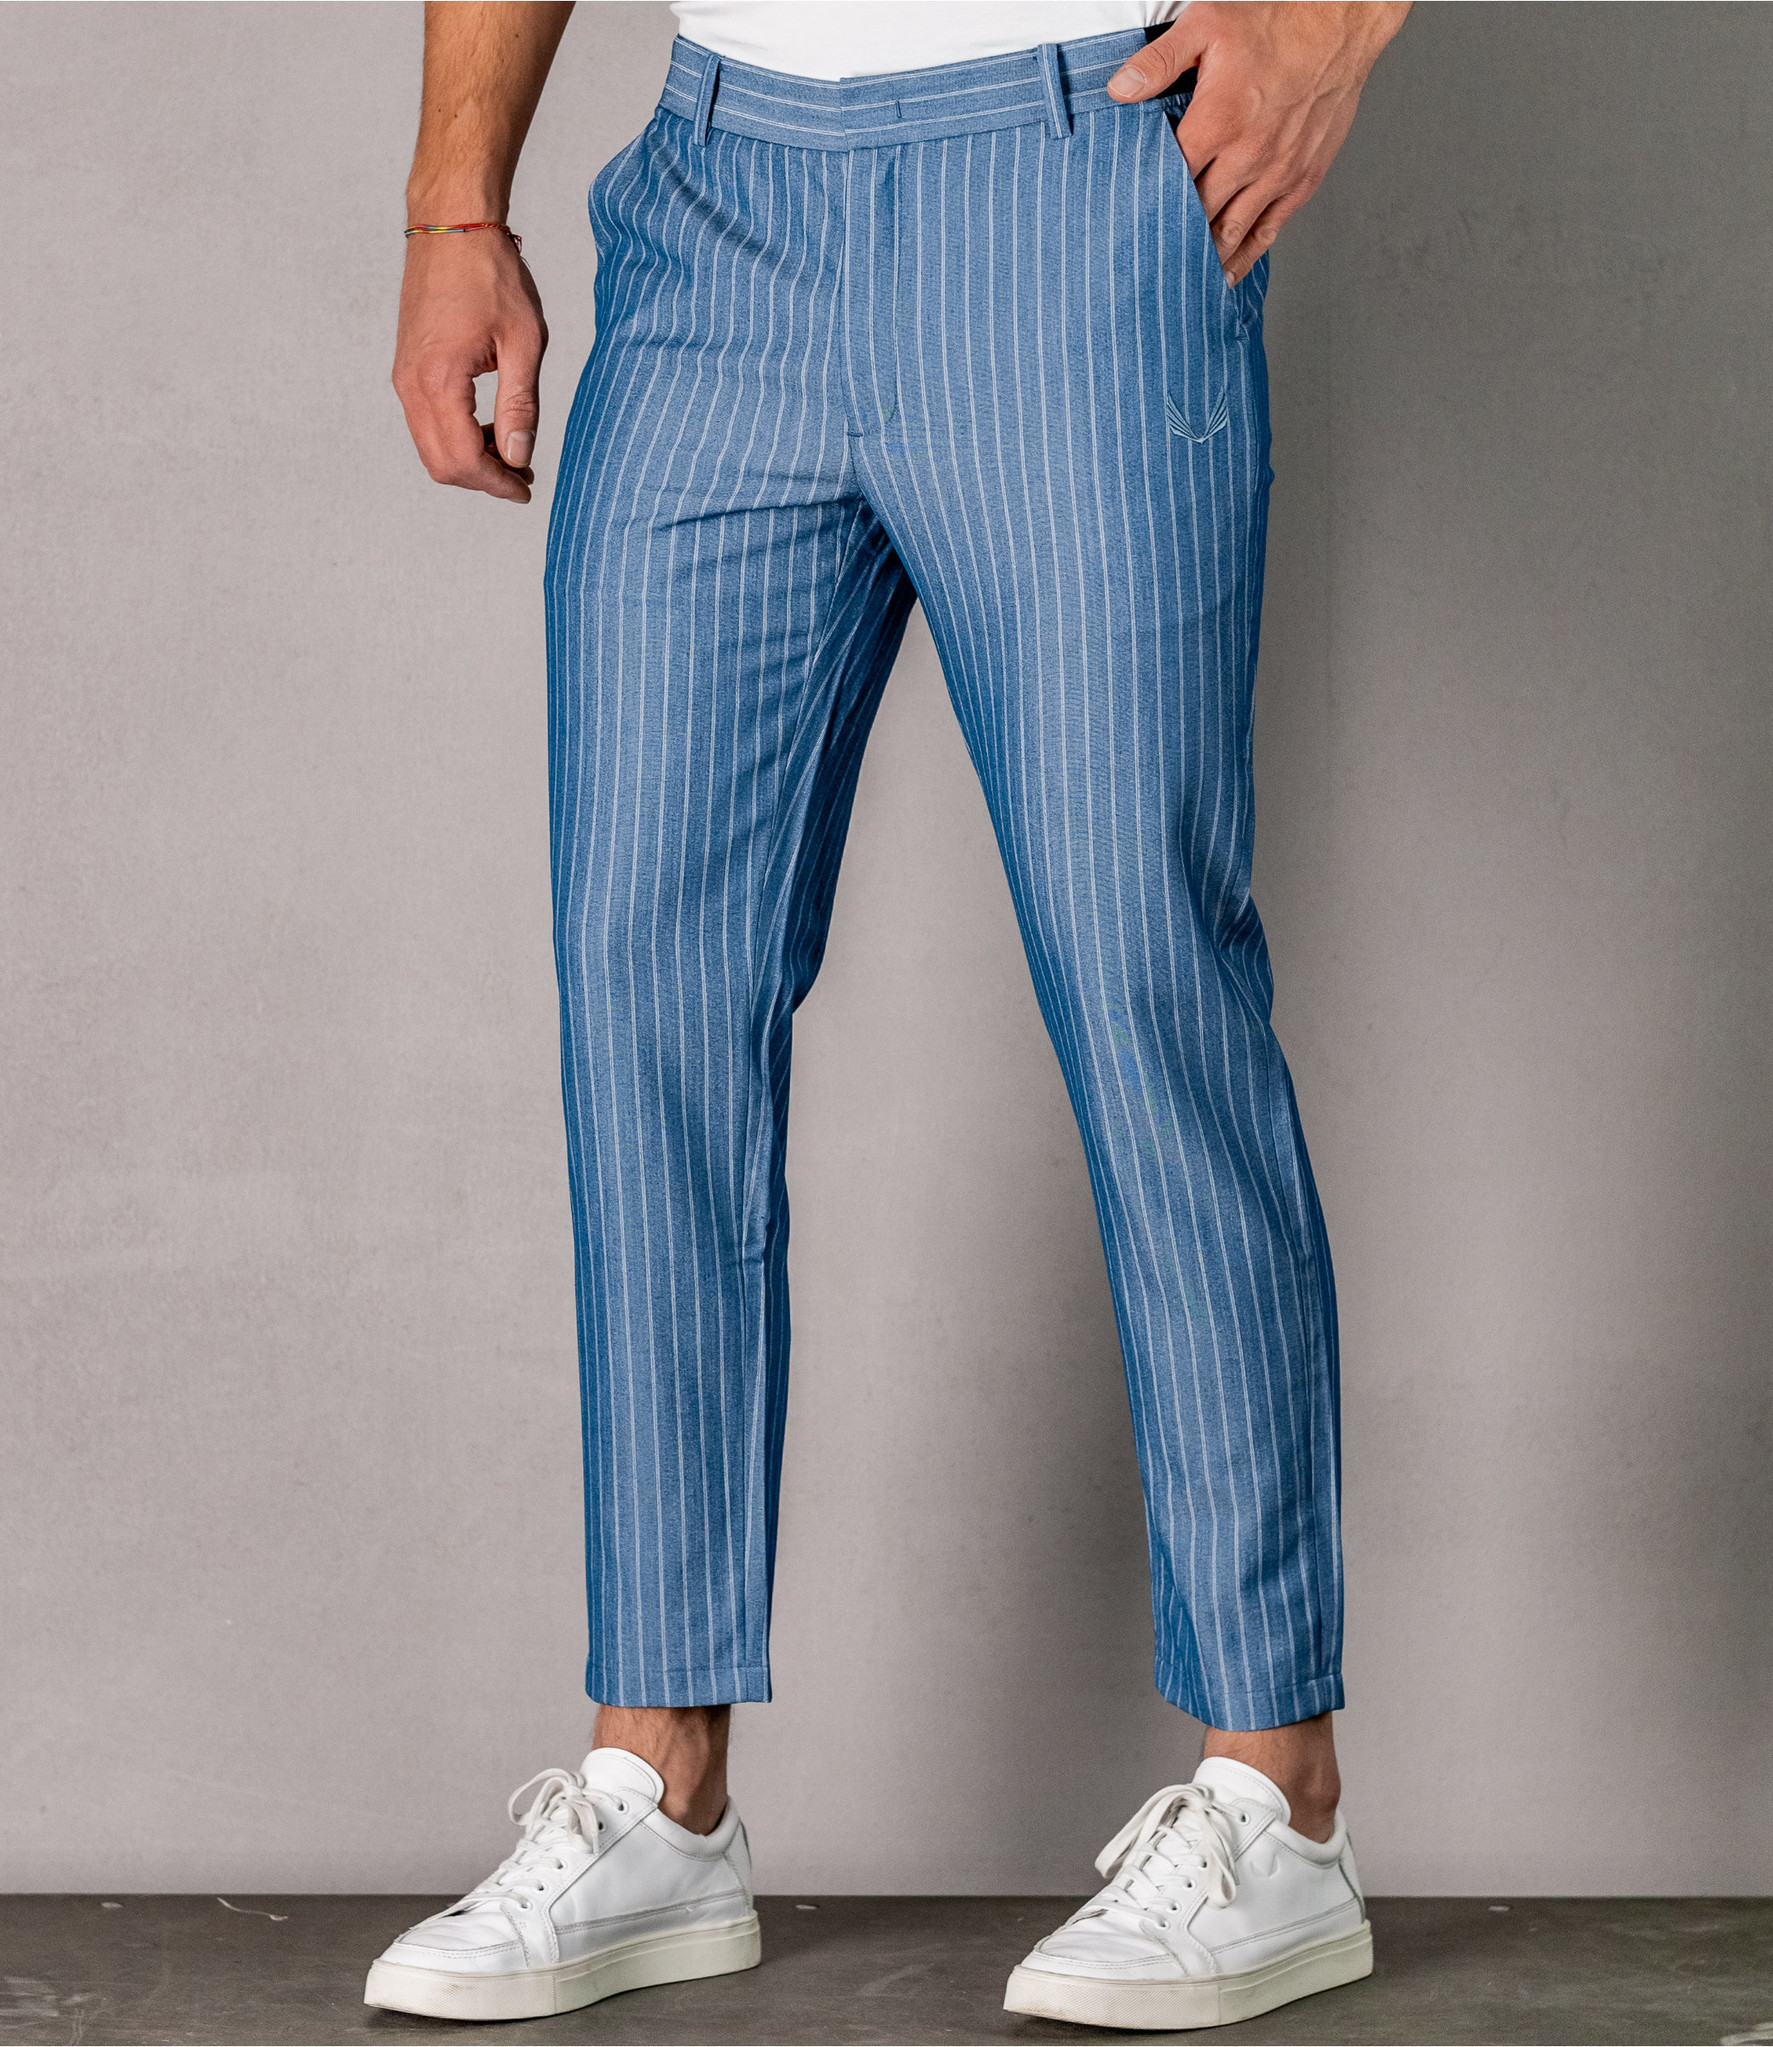 Zumo Slim Fit Pants BRIDGE IndigoBlue